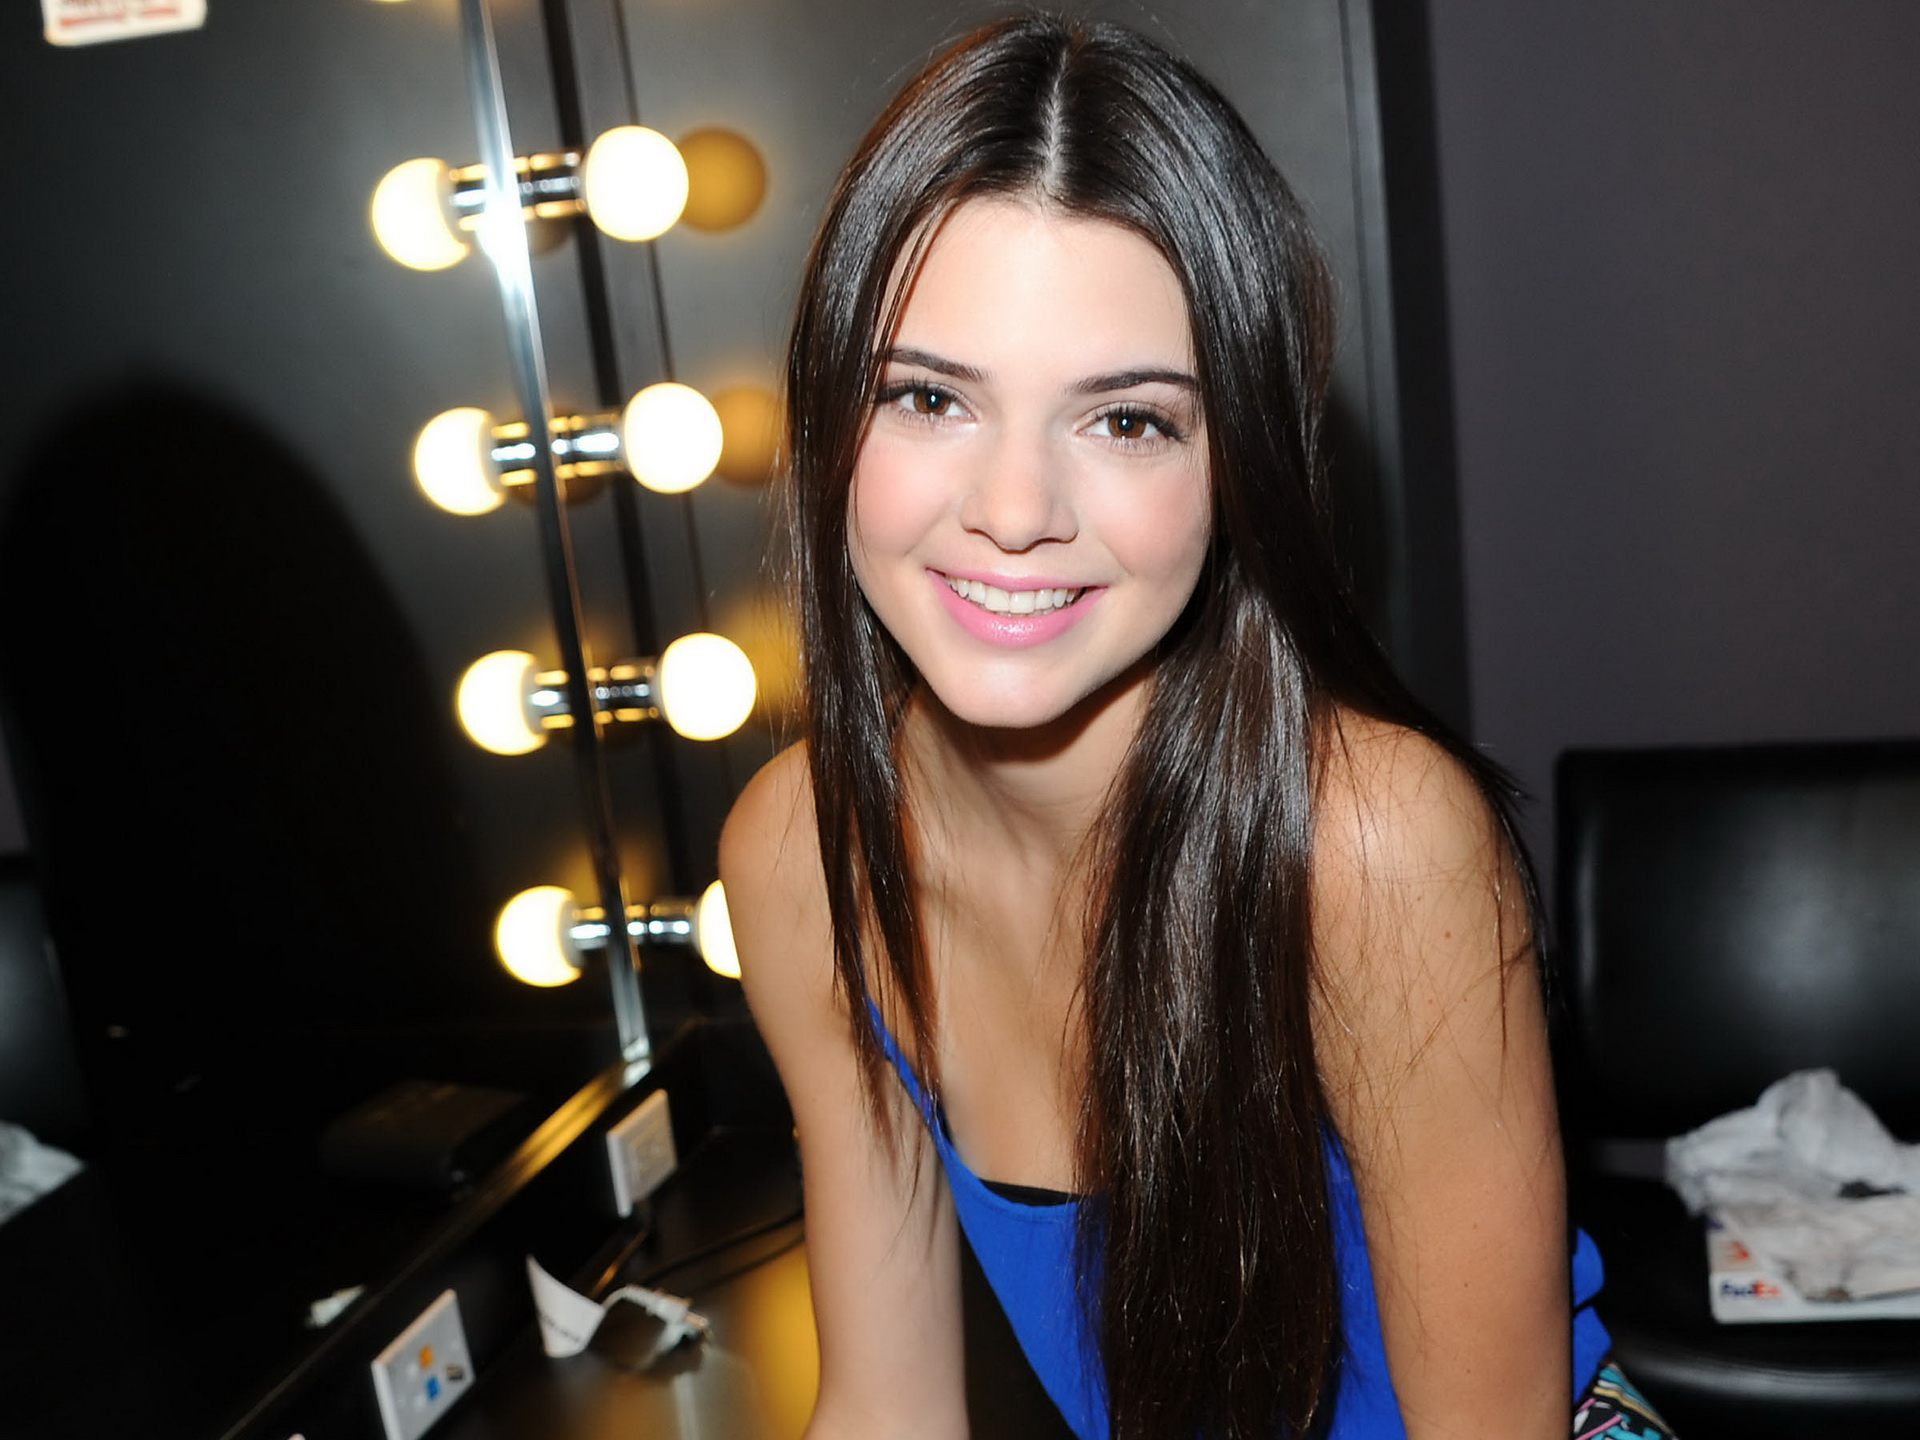 Kendall Jenner Wallpapers Download High Quality HD Images 1920x1440